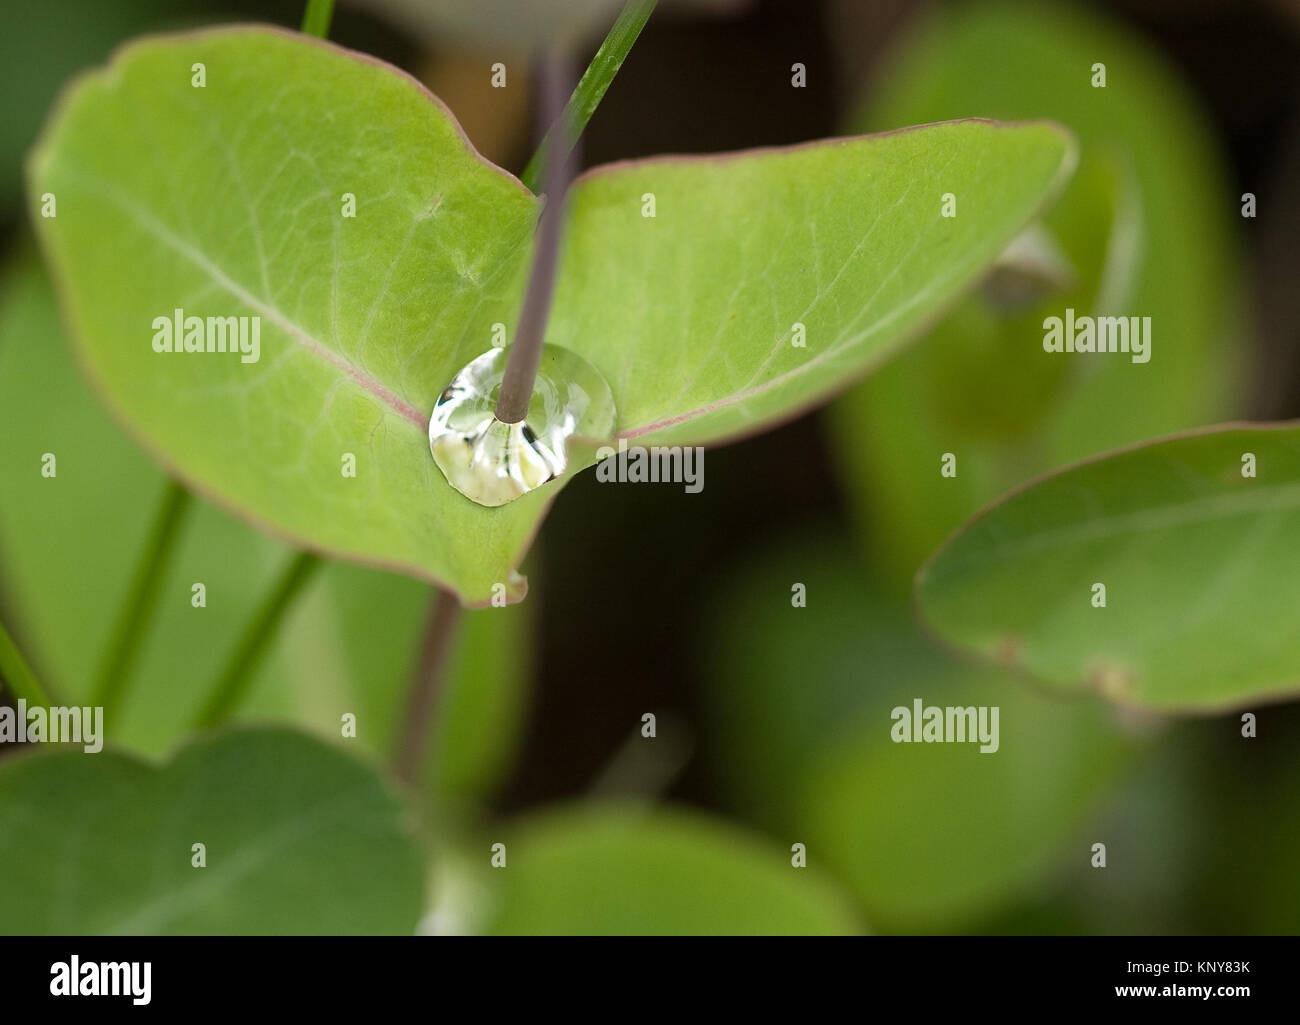 waterdrop on the leaf of a garden flower - Stock Image